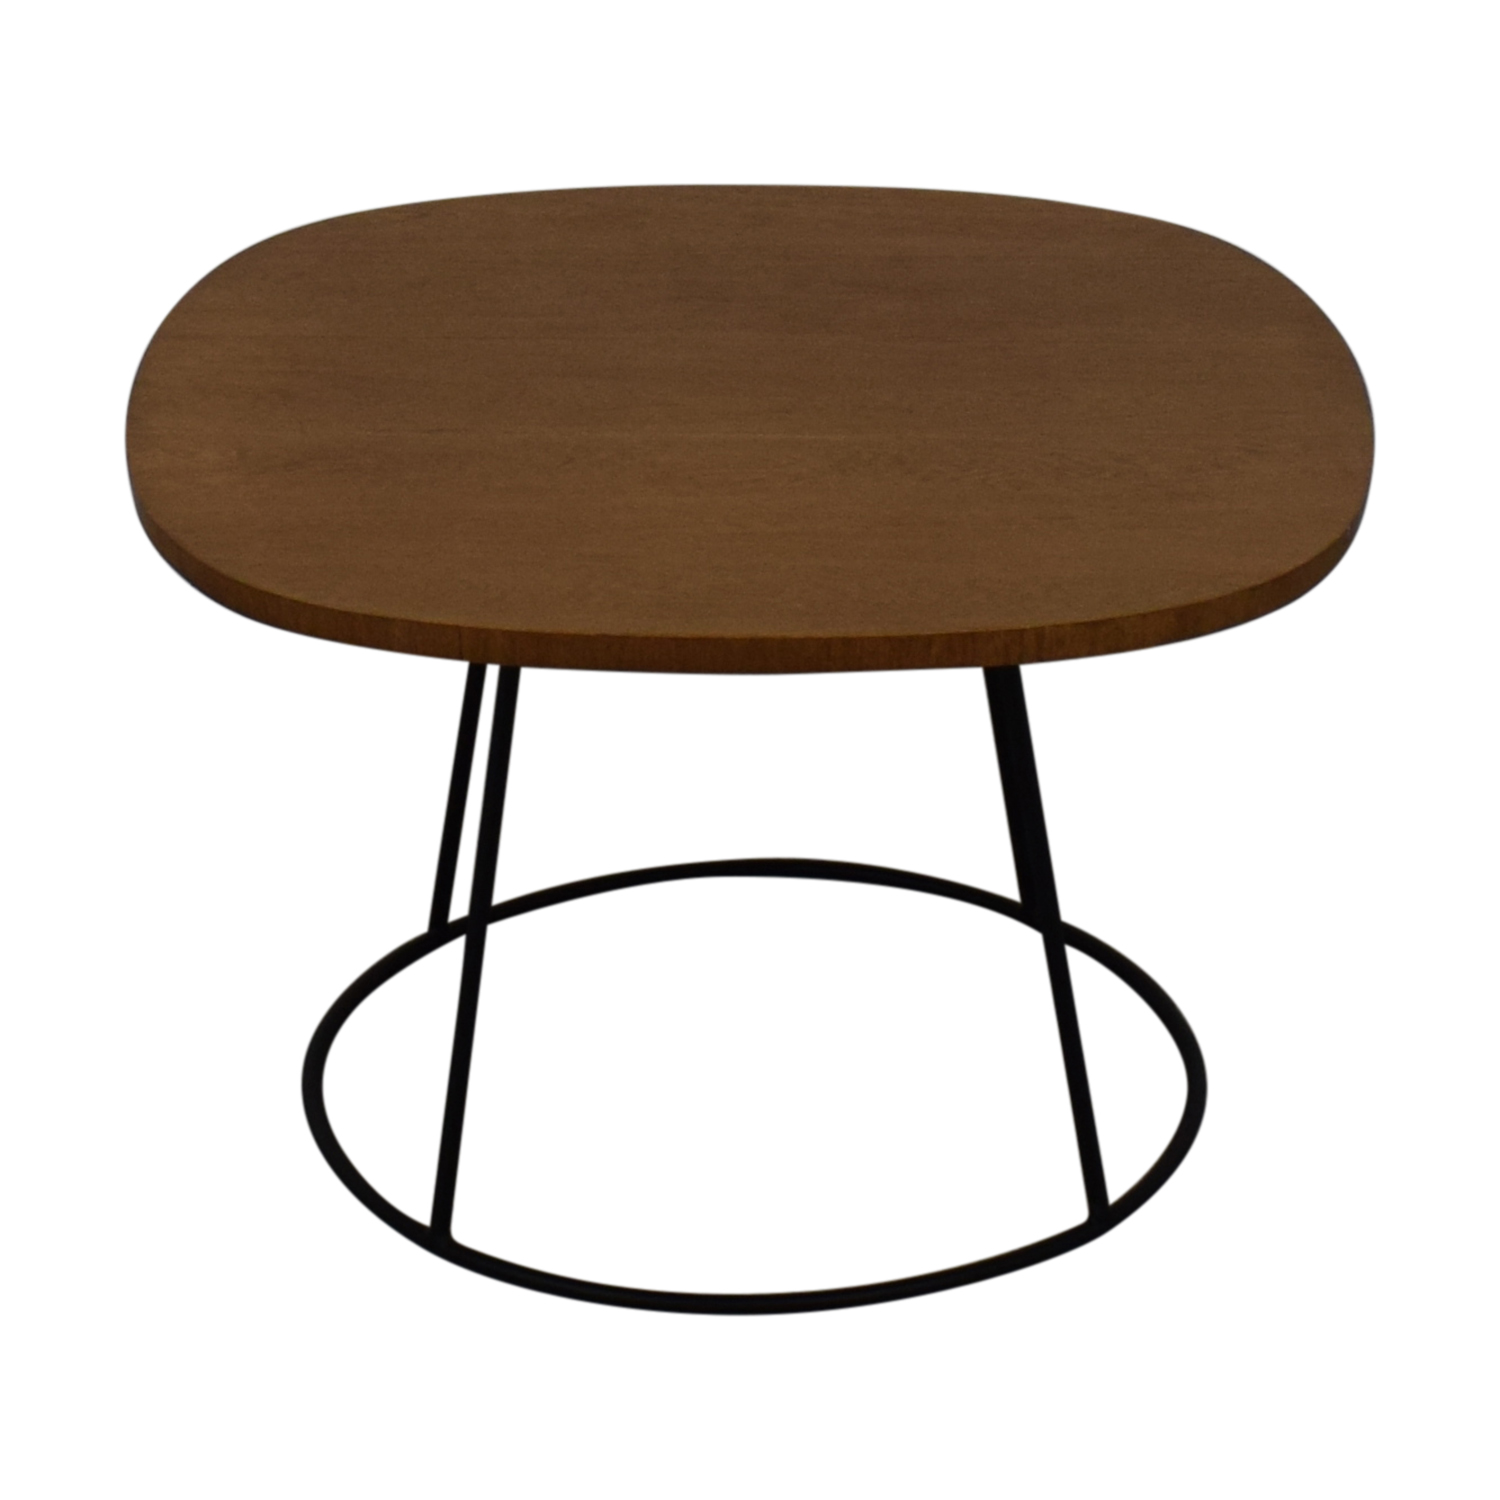 shop Zientte Zientte Sierra Round Cornered Square Side Table online